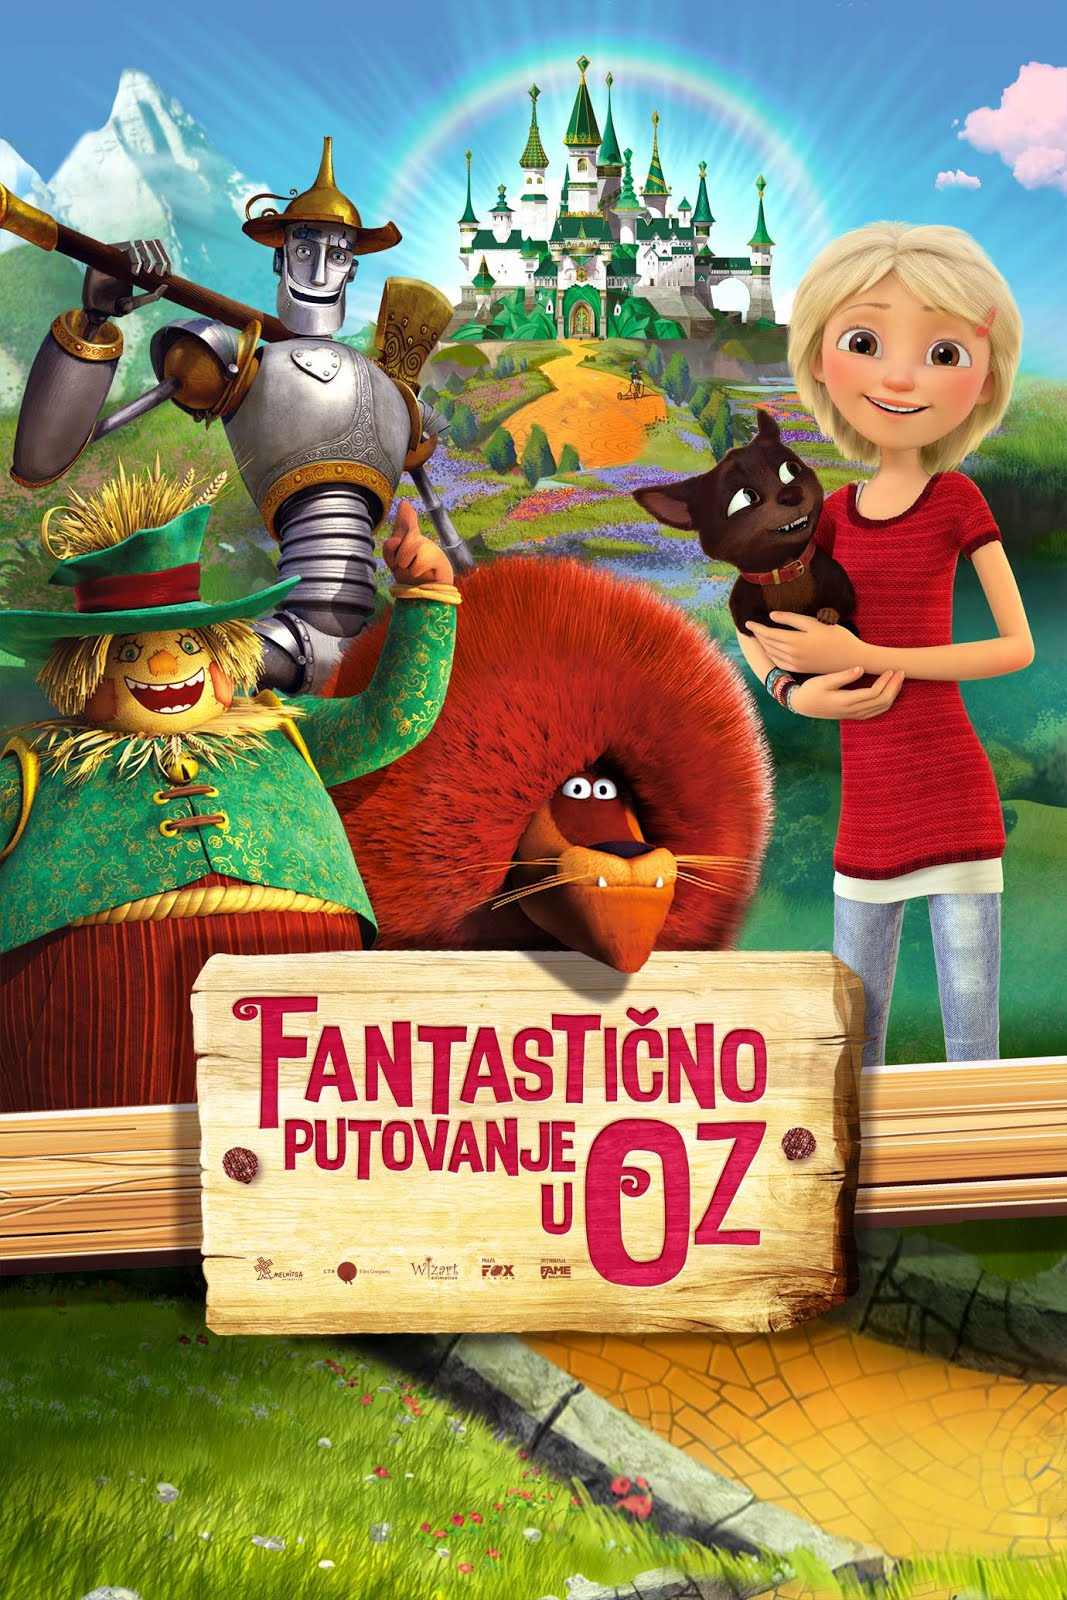 Fantastic Return To Oz (2019) English 720p WEBRip x264 800MB